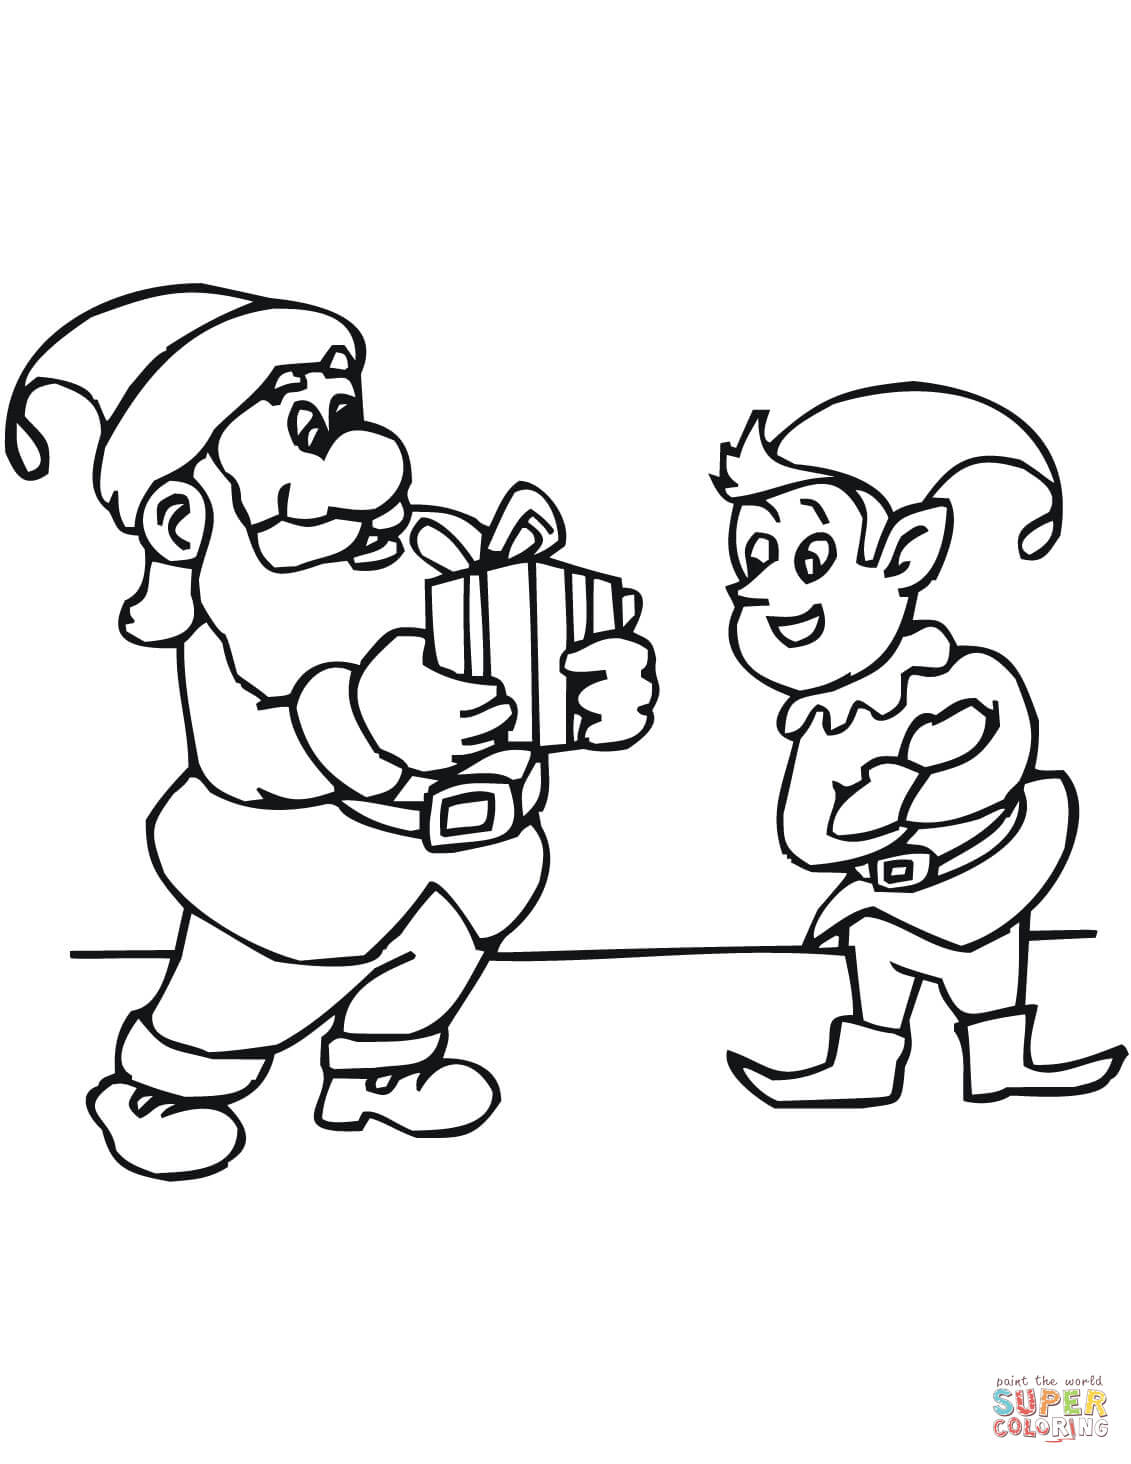 Santa S Elf Colouring Pages With Christmas Elves Coloring Free